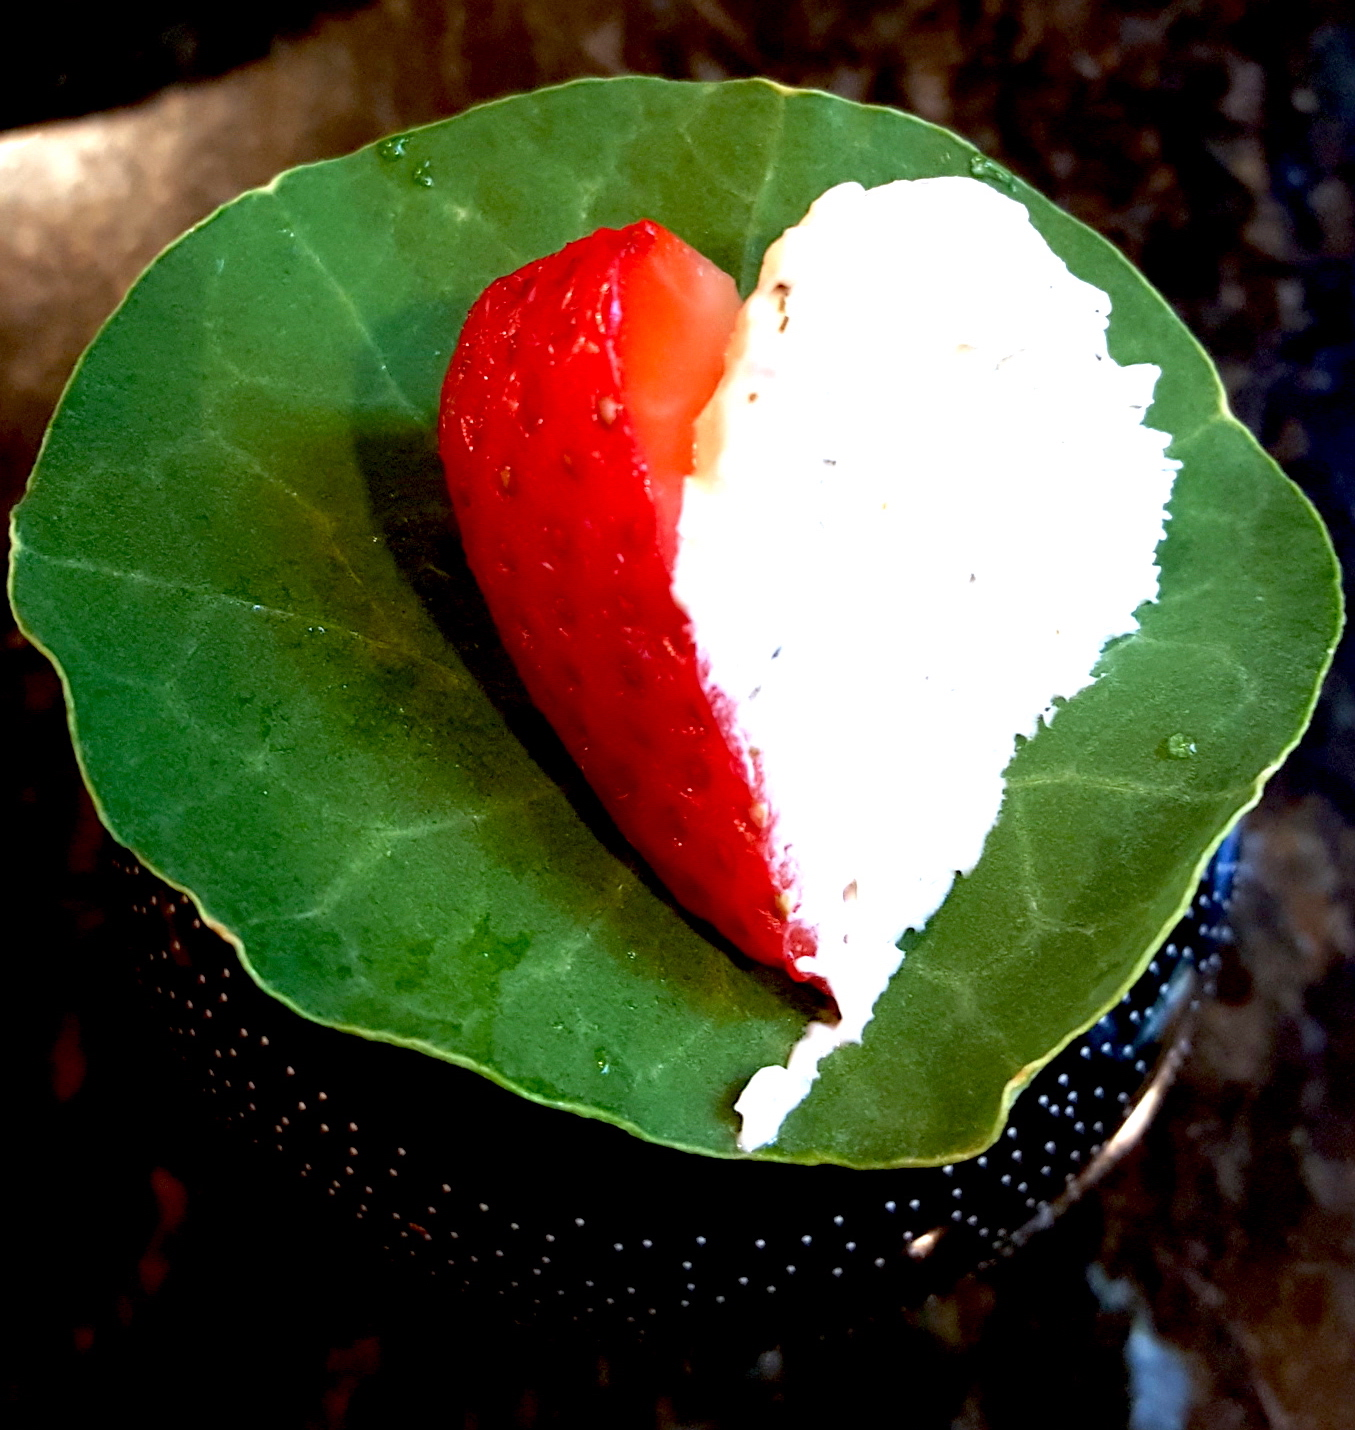 """Nasturtium Wrap - Strawberry hearts with creamy Dill whip(Tip: angle the knife to cut out the strawberry core on top and slice sideway to create little """"hearts"""". )"""